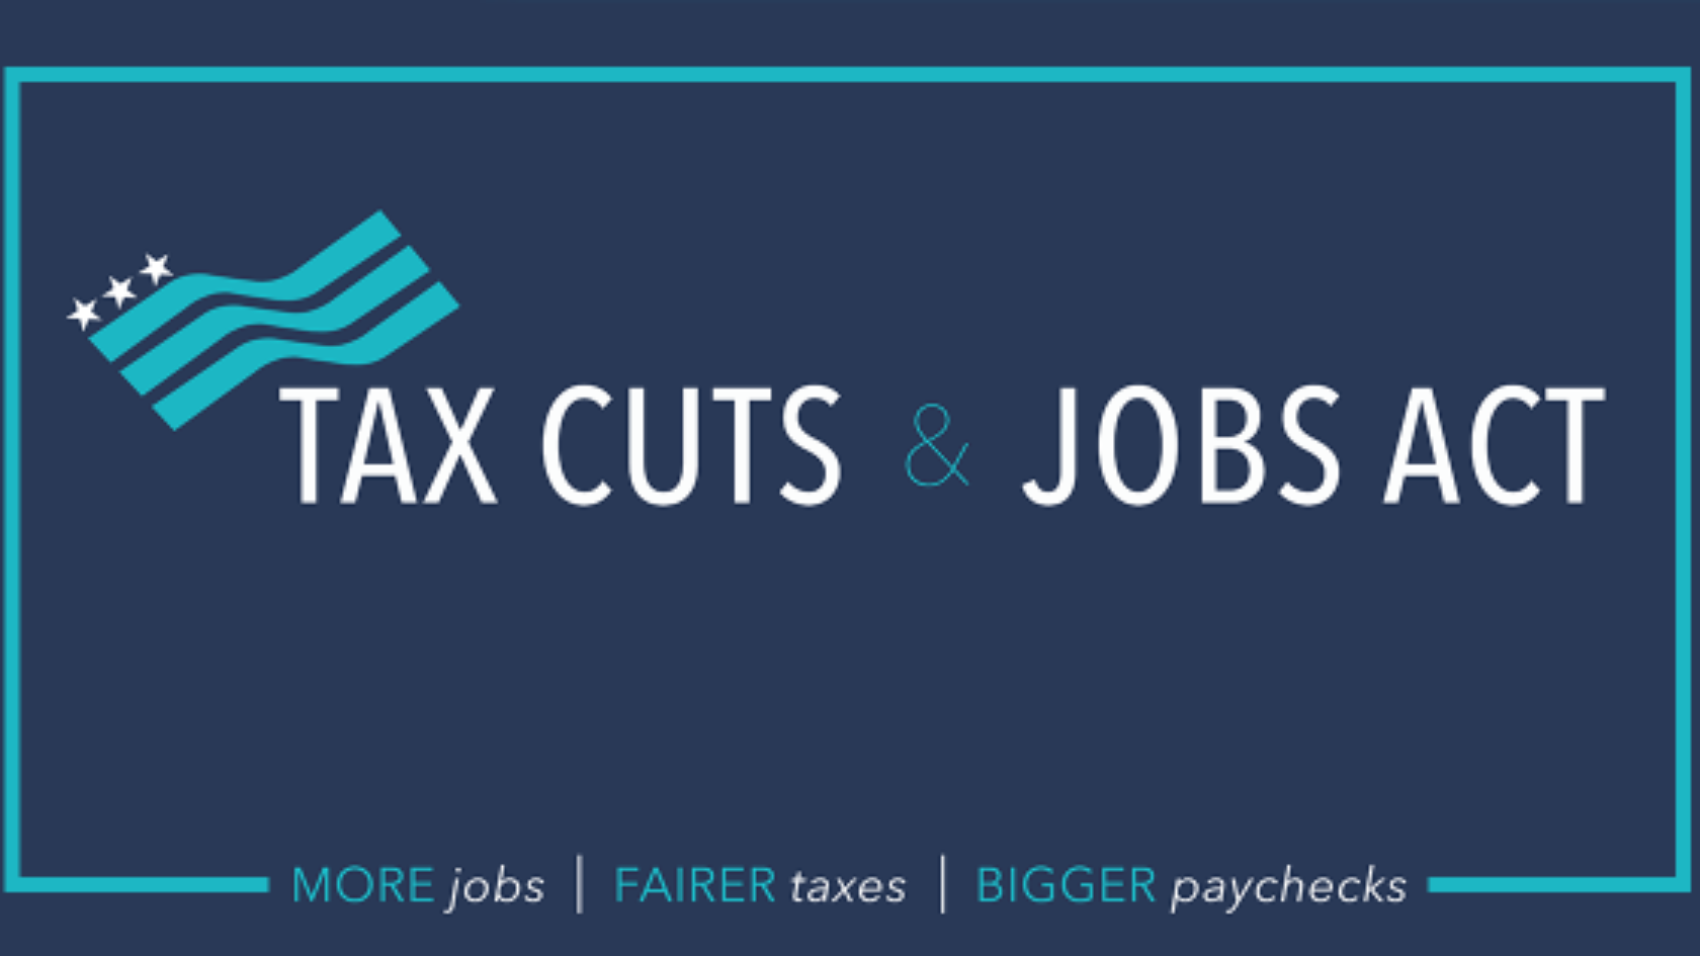 tax reform, tax cuts and jobs act, international tax accountant CPA international tax advisors inc. drew edwards cpa tax reform miami international tax services